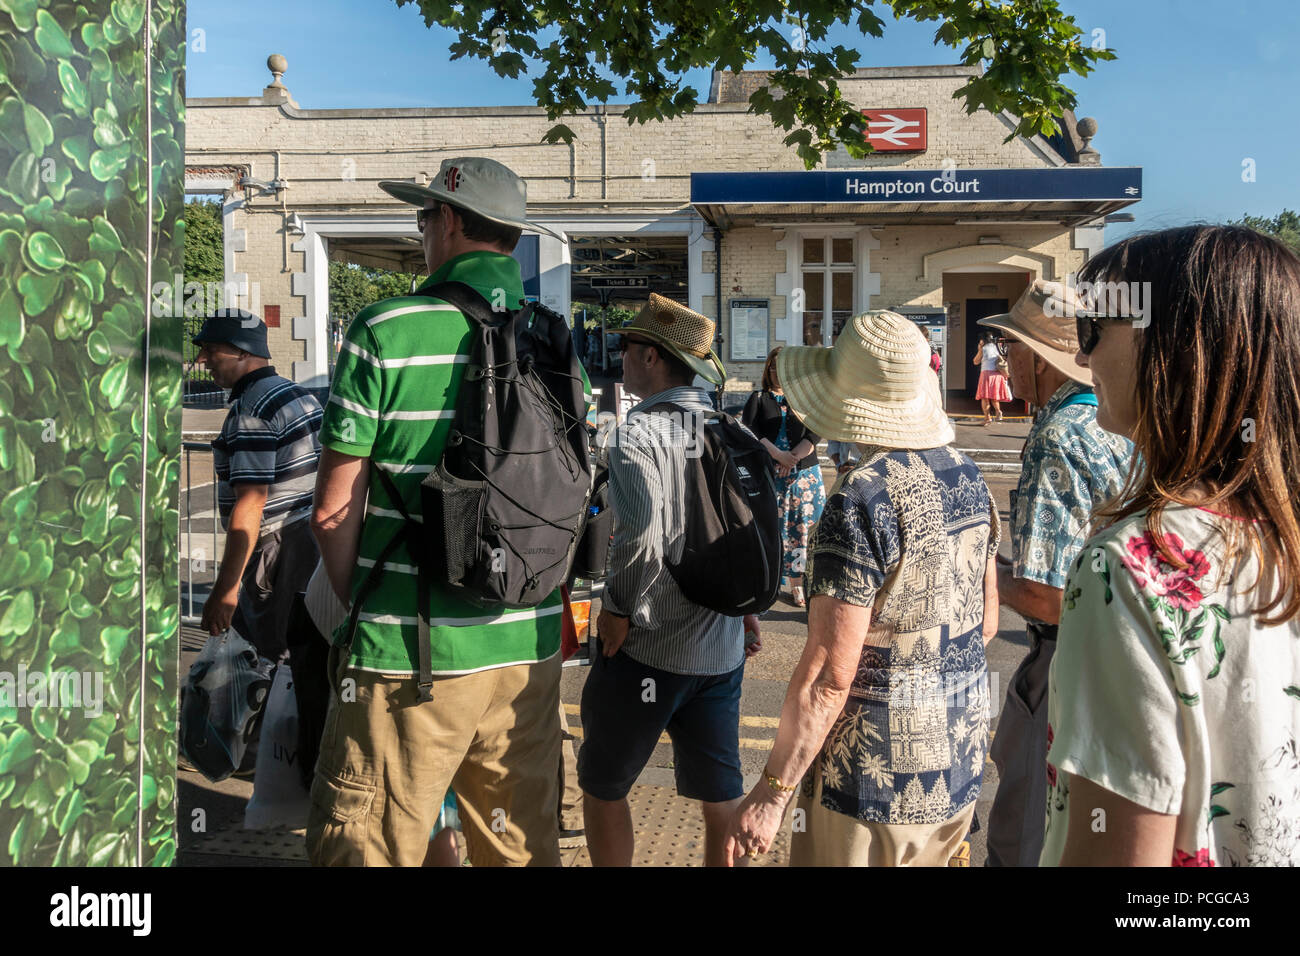 Passengers queueing for a train to London at Hampton Court station on a hot summer July day. East Molesey, Surrey, England - Stock Image